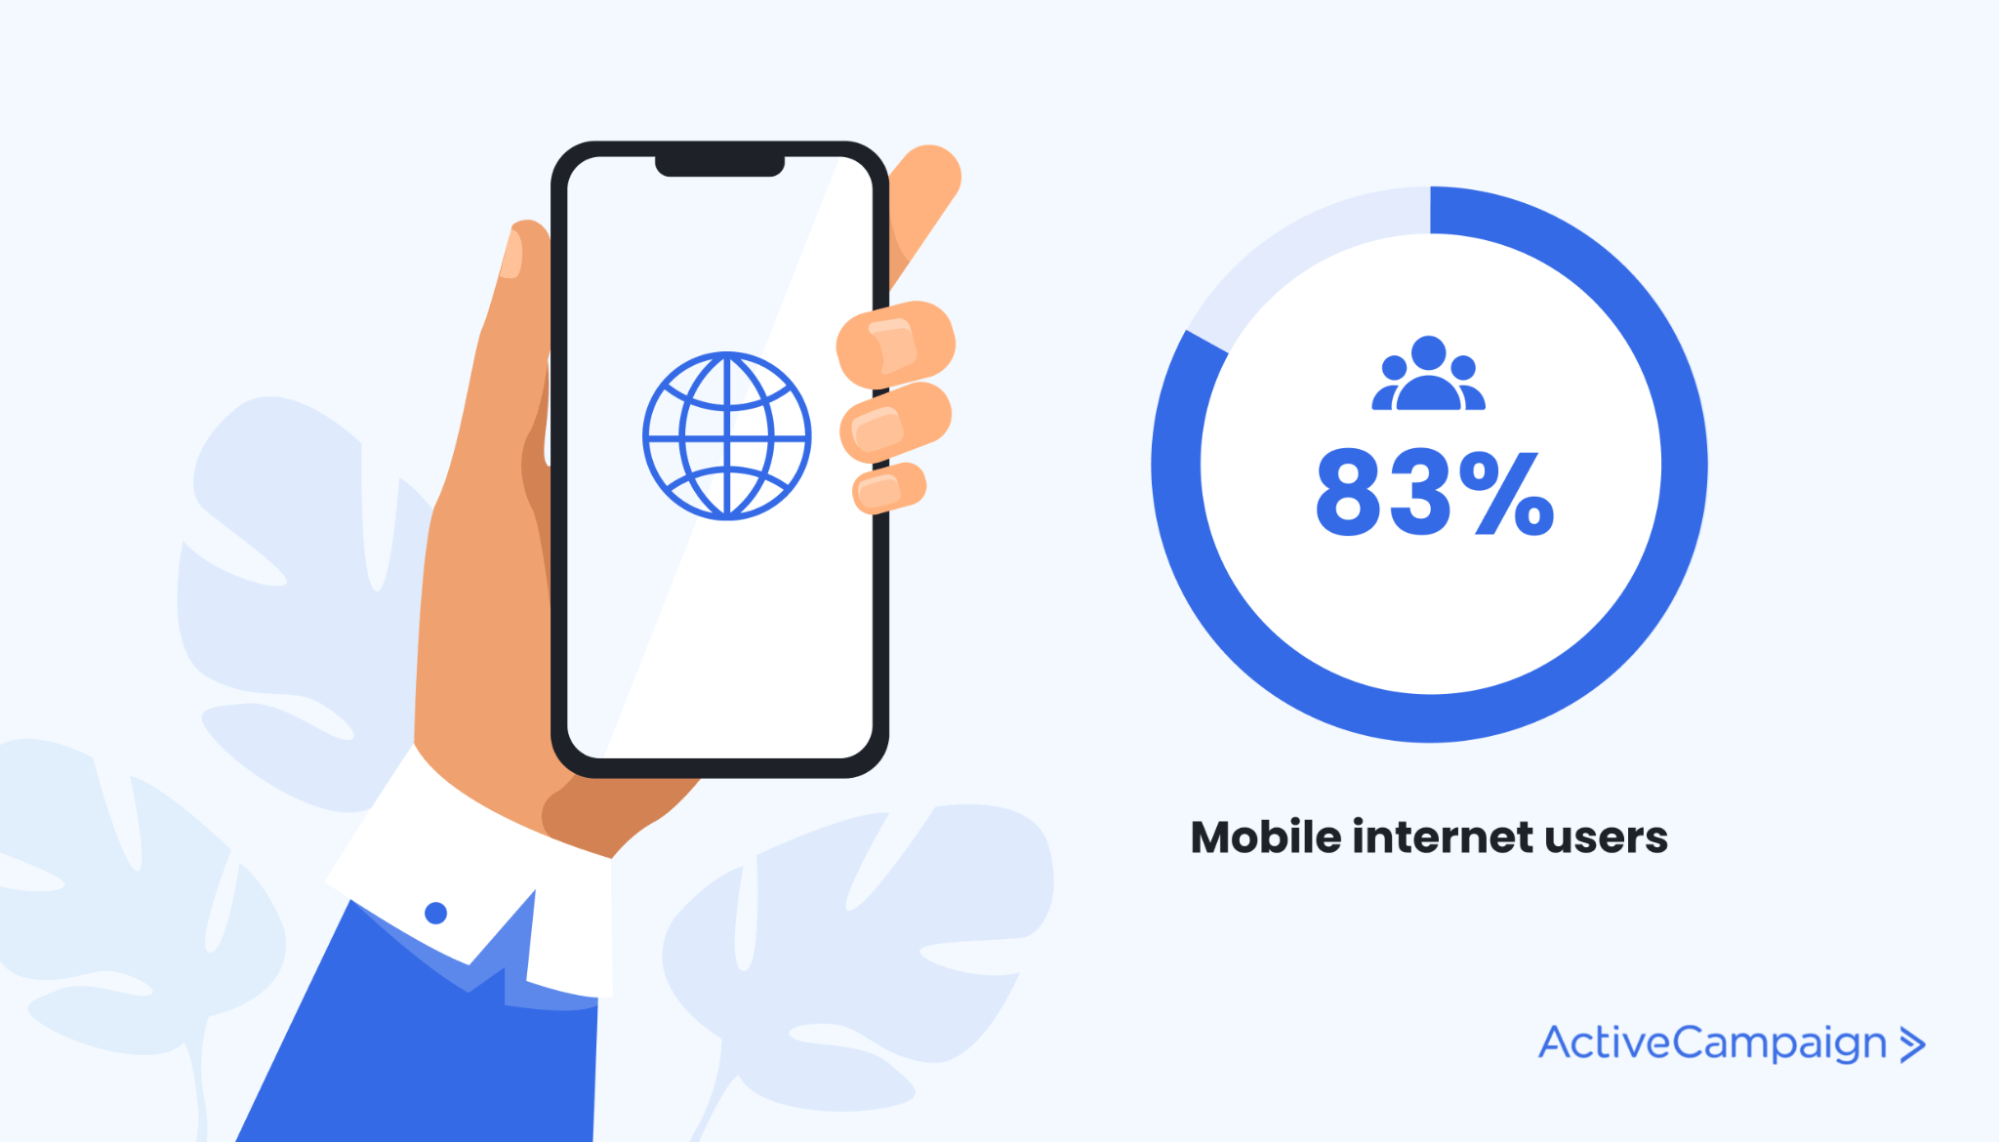 83% of US consumers are mobile internet users